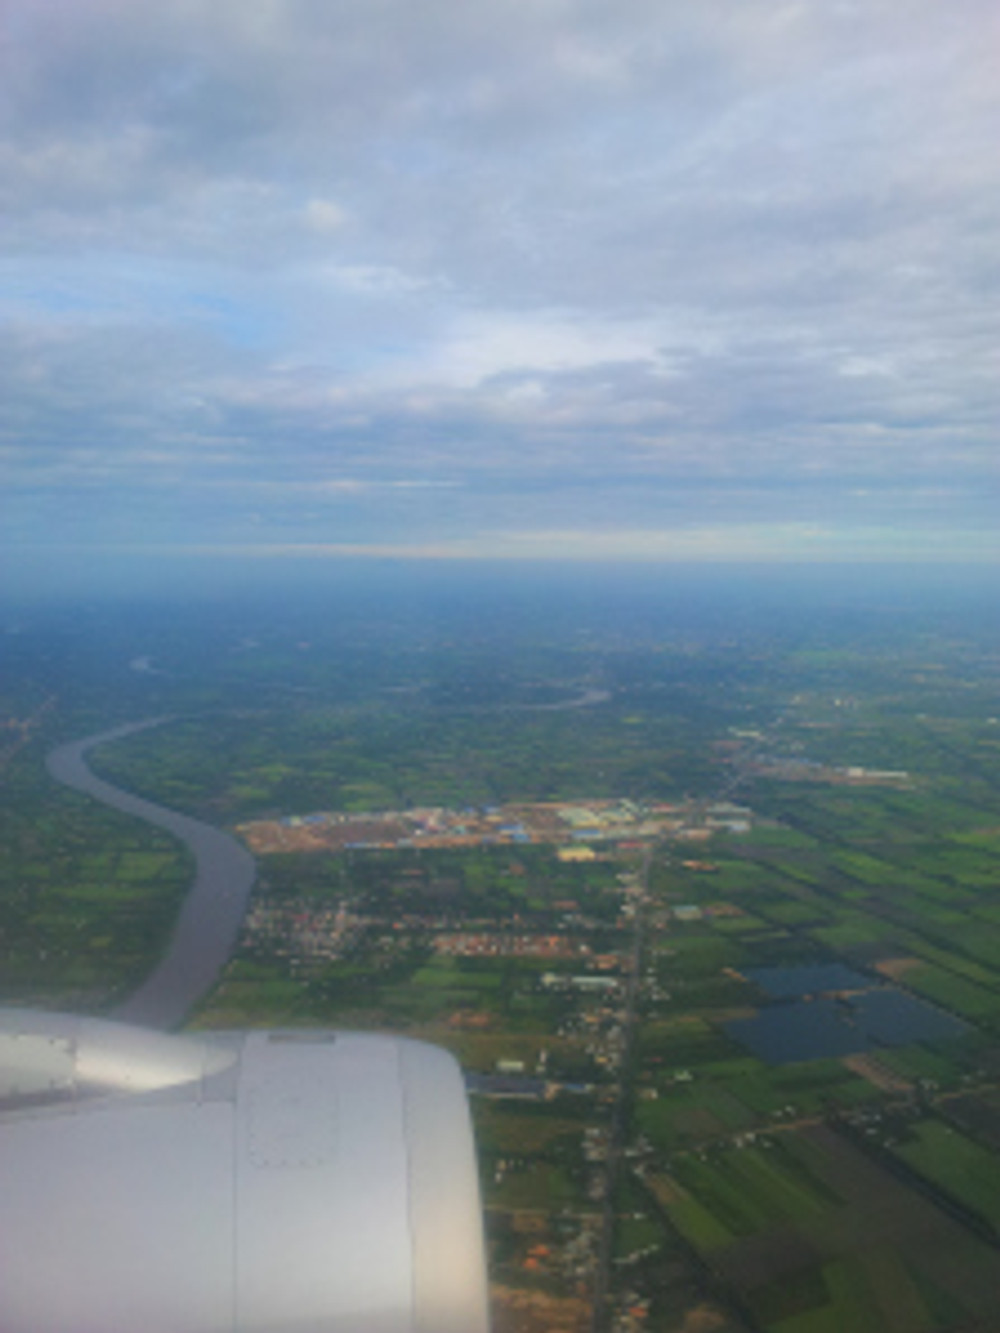 Airscape and the Tien Giang River